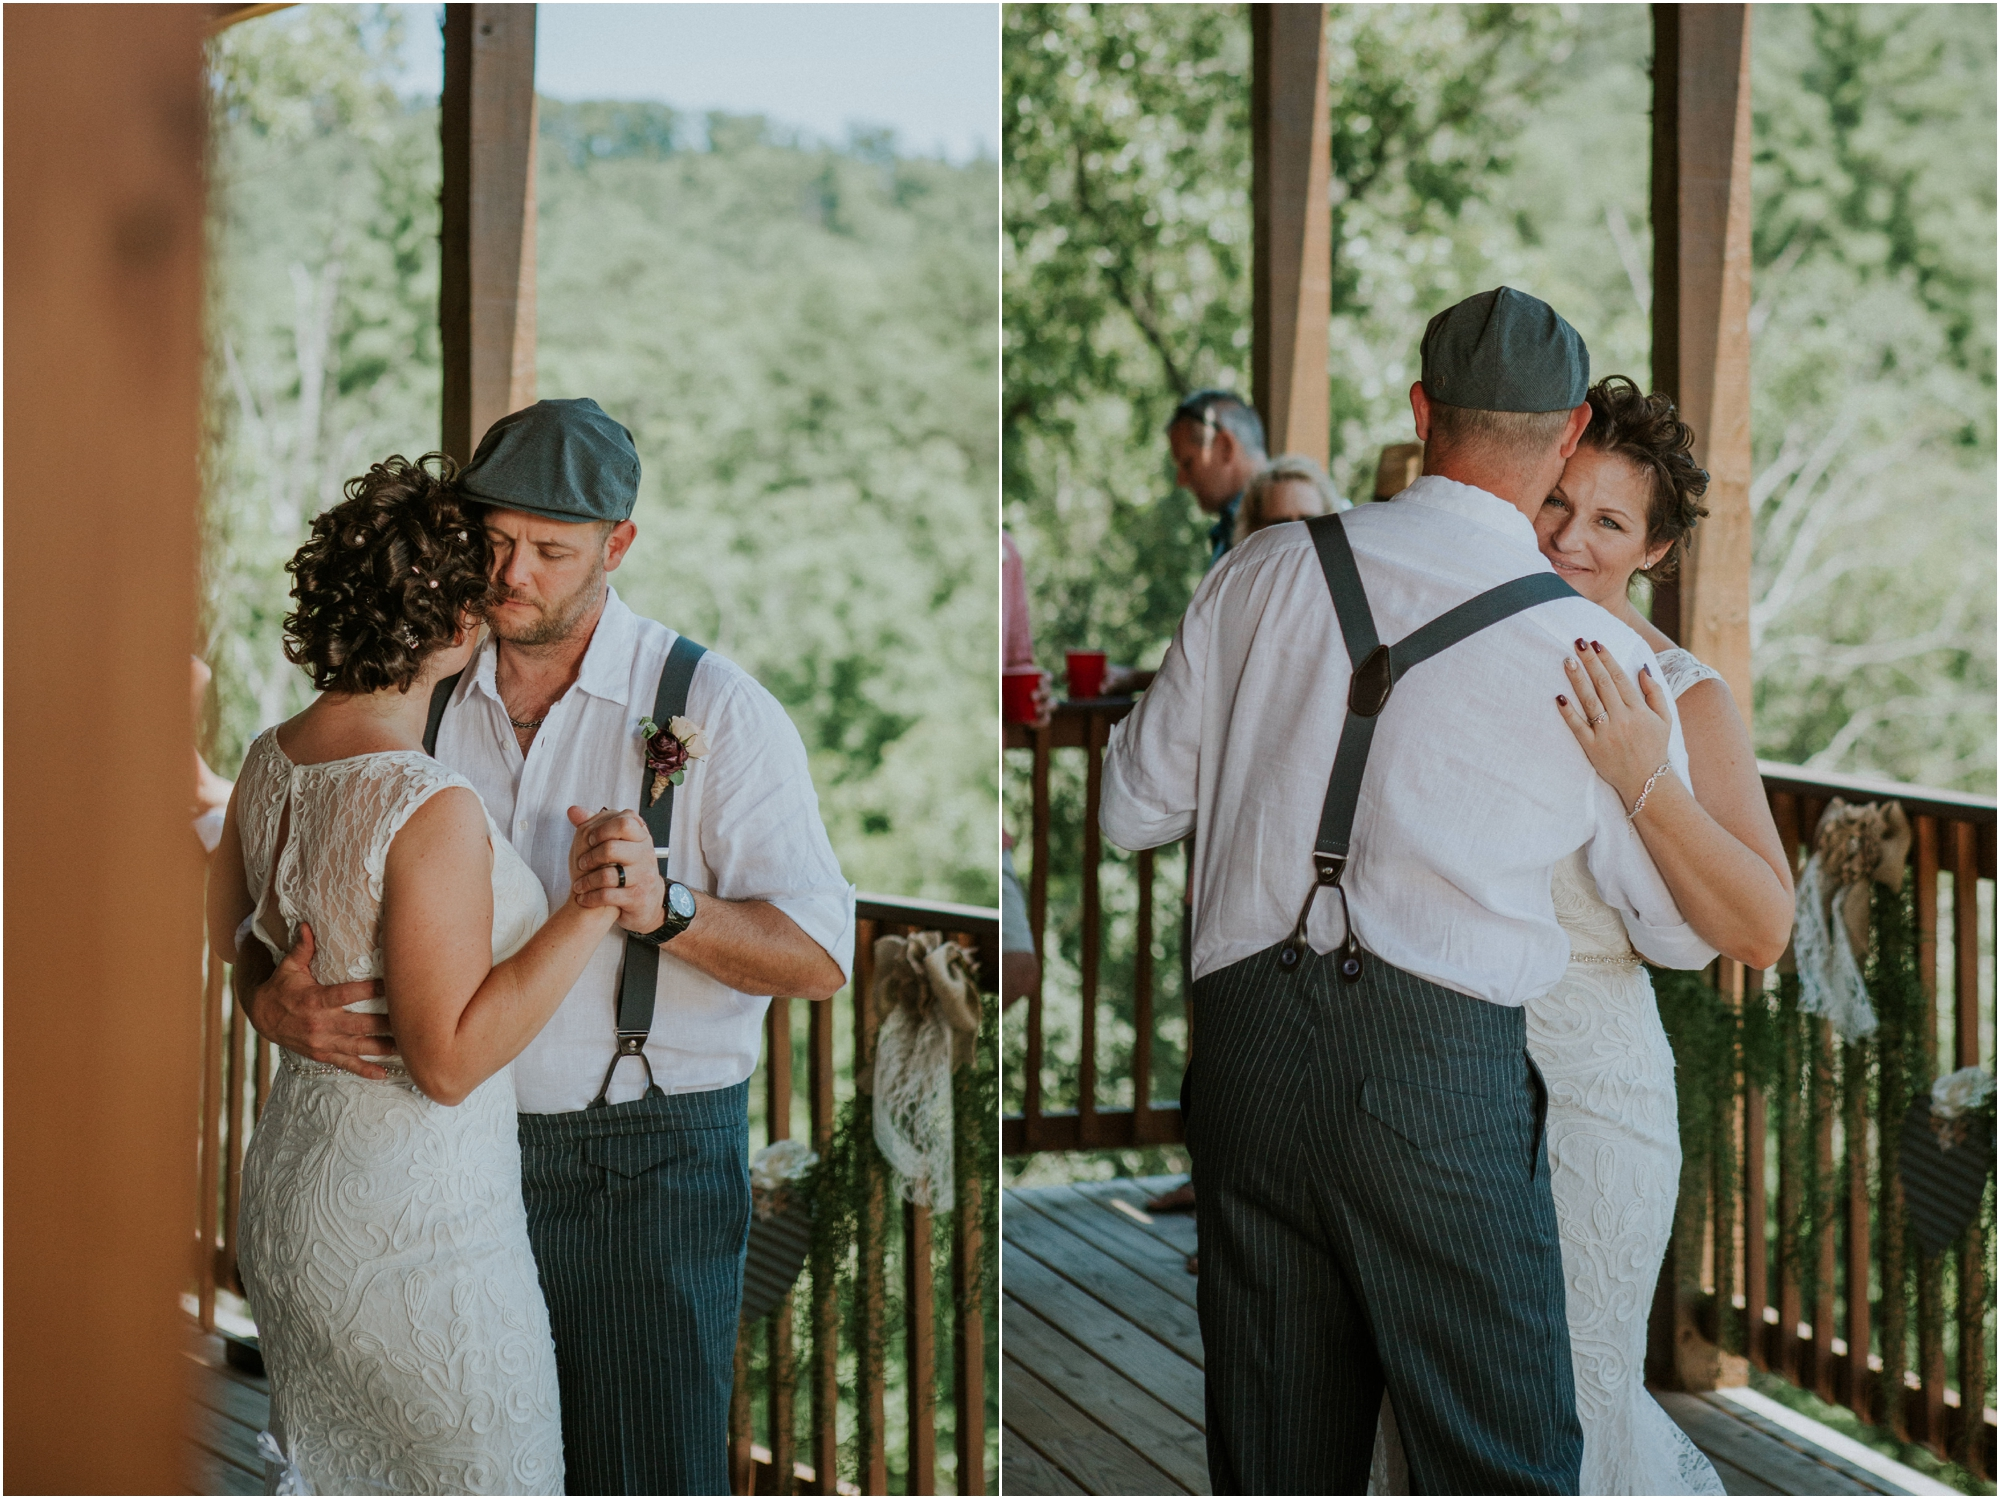 cabin-parkside-resort-the-magnolia-venue-tennessee-mountain-views-intimate-wedding_0172.jpg